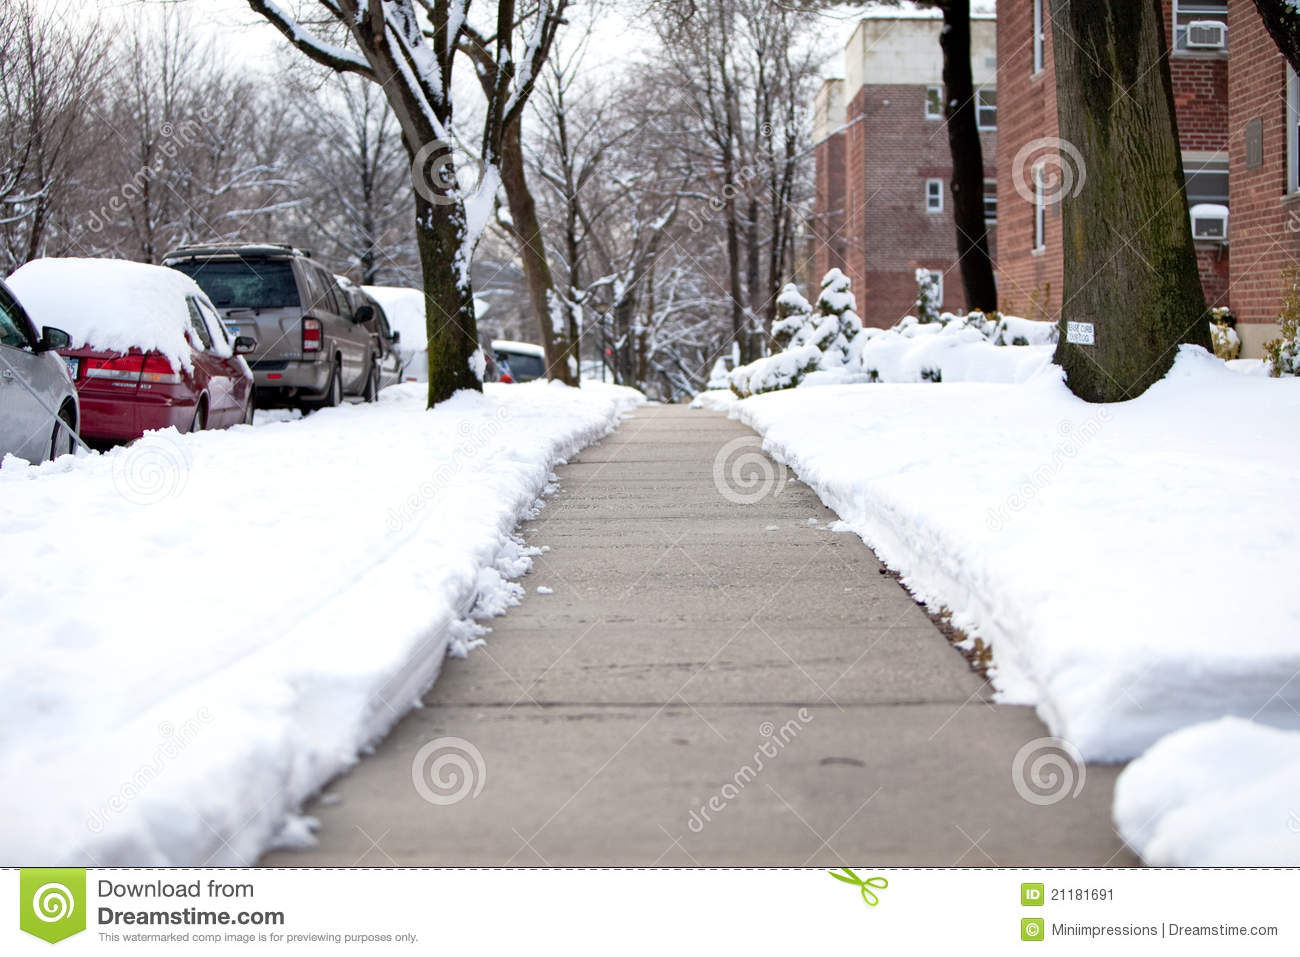 Plowed walkway after a snowstorm